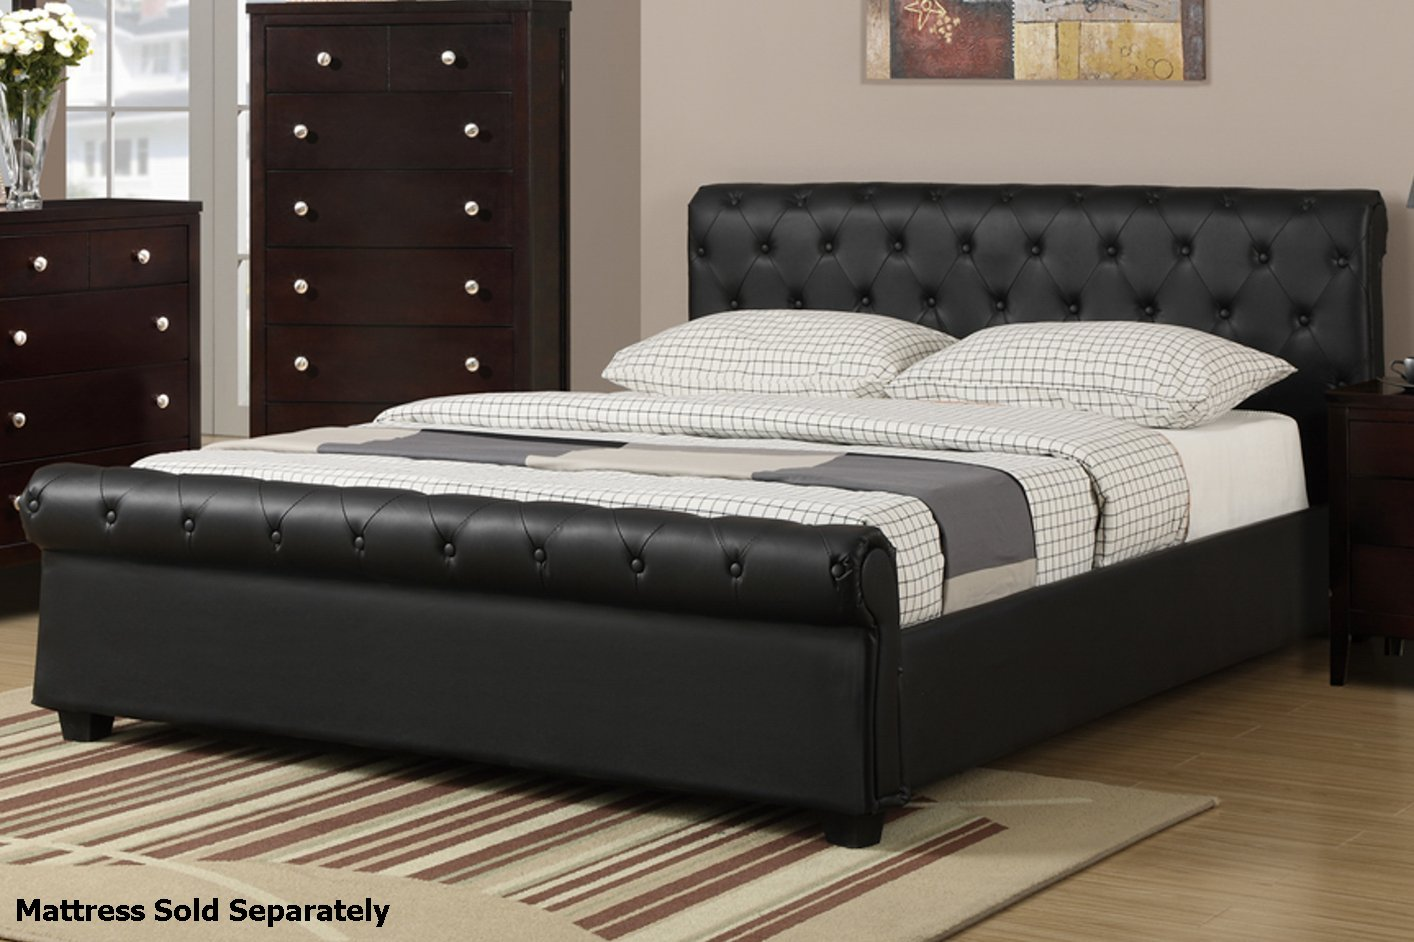 To Buy Bedroom Furniture In Dubai Also Image Of Bedroom Furniture ...